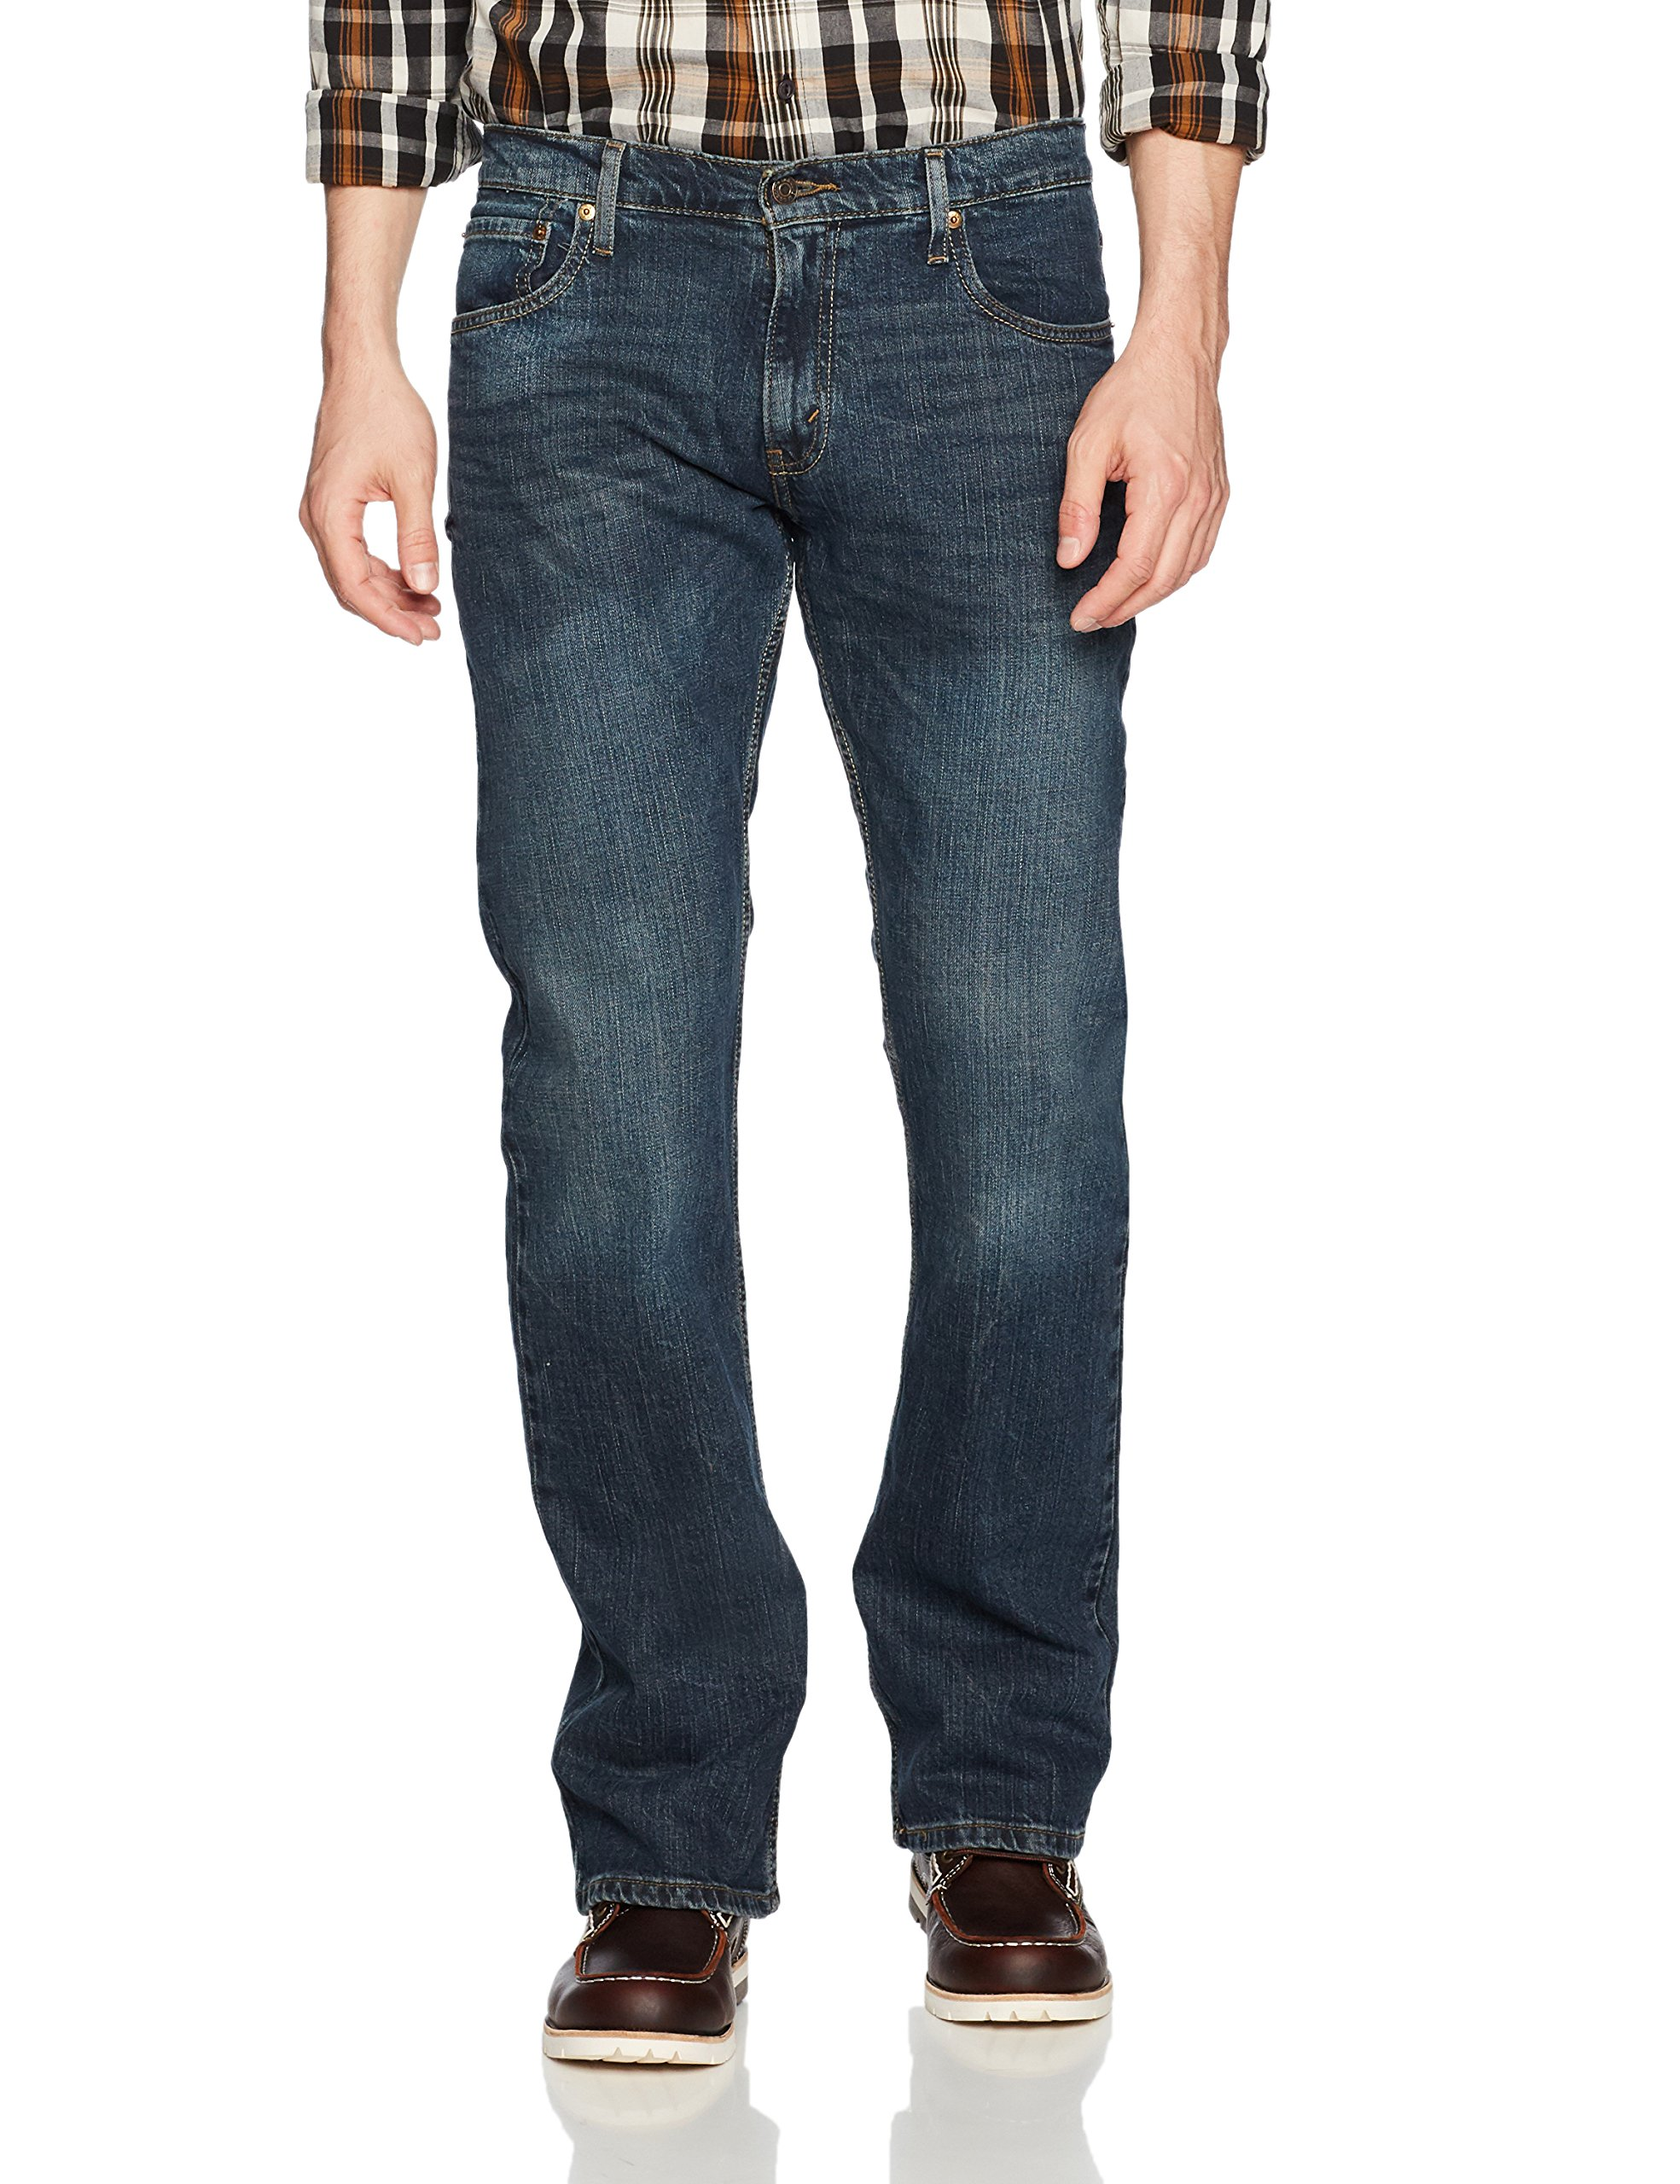 Signature by Levi Strauss & Co. Gold Label Men's Bootcut Fit Jeans, Headlands, 33W x 30L